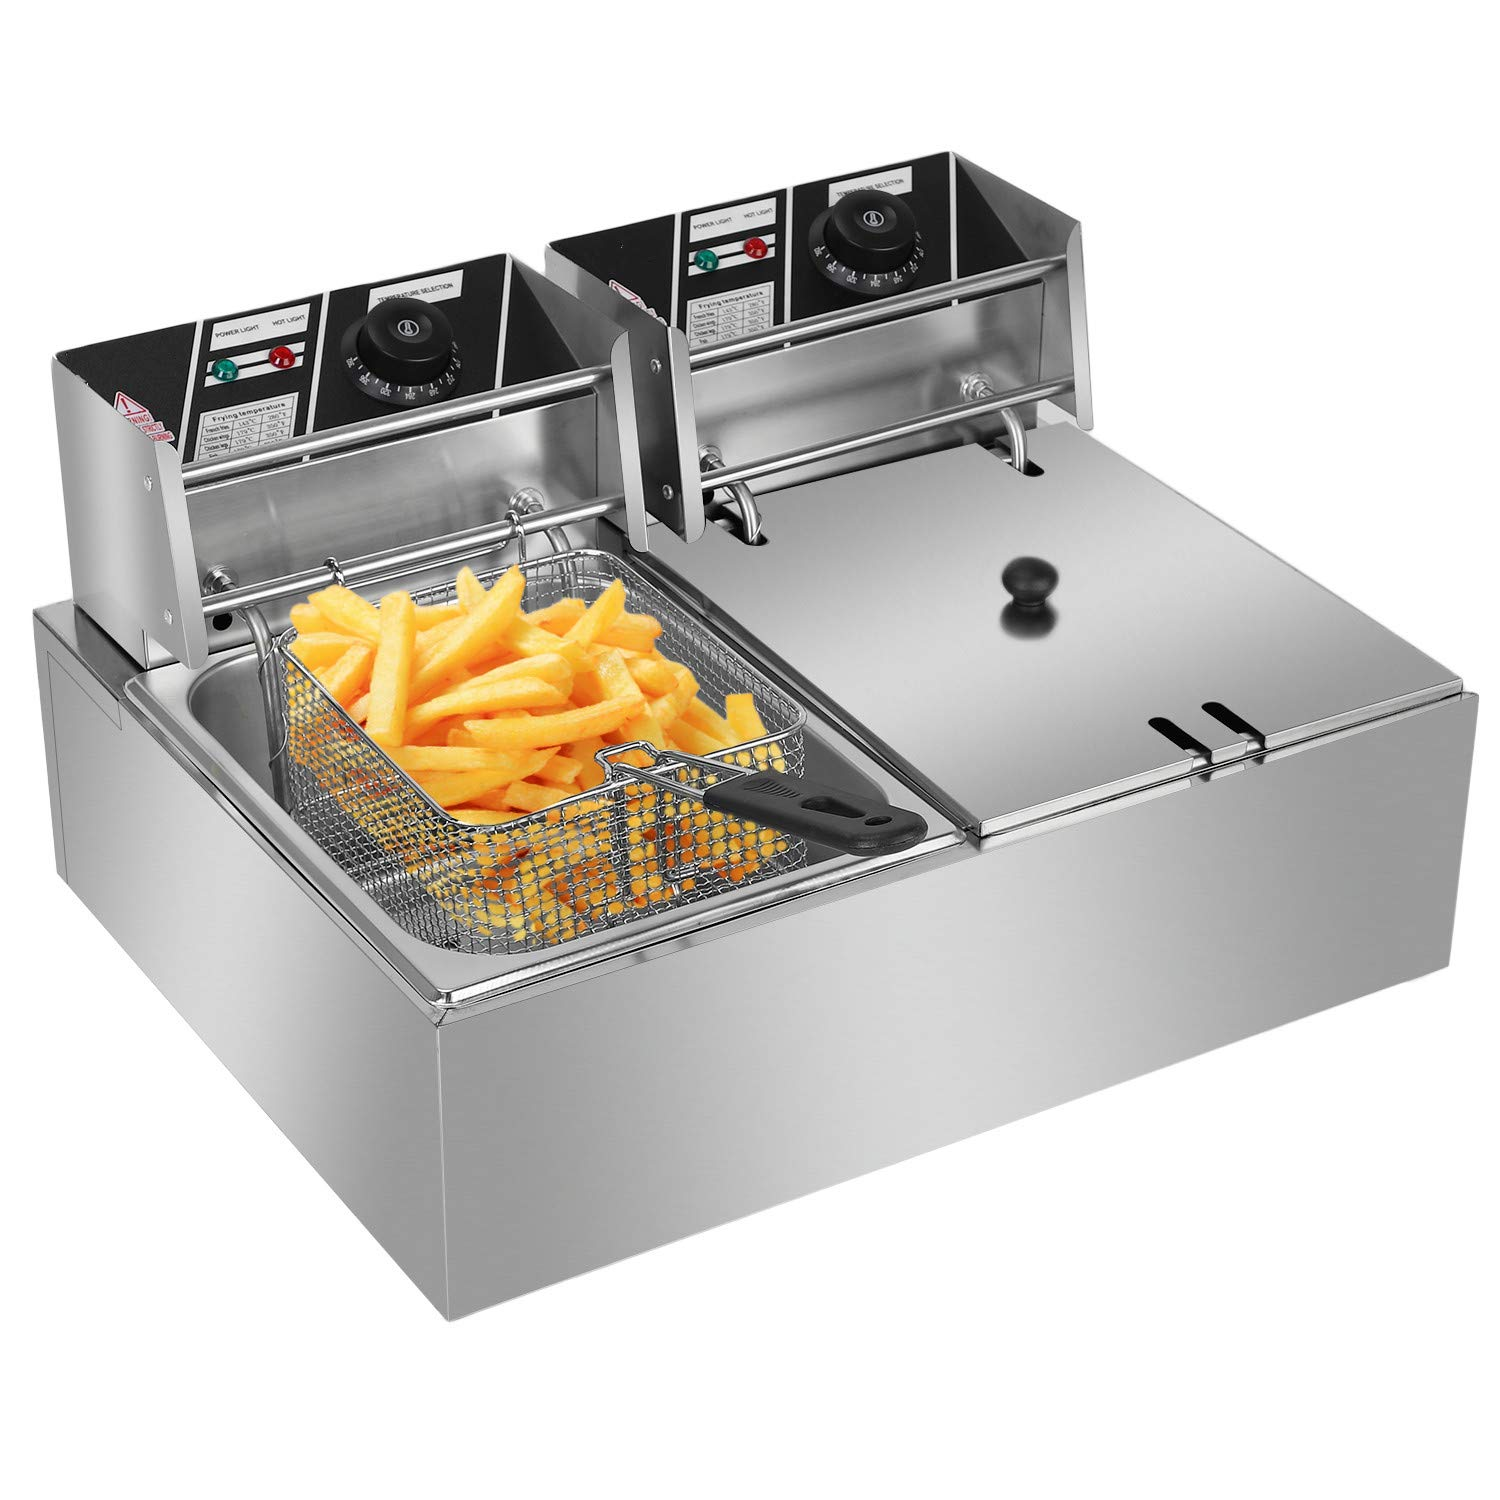 Stainless Steel Double Cylinder Electric Fryer 5000W MAX 110V 12.7QT/12L US Plug by Lovinland